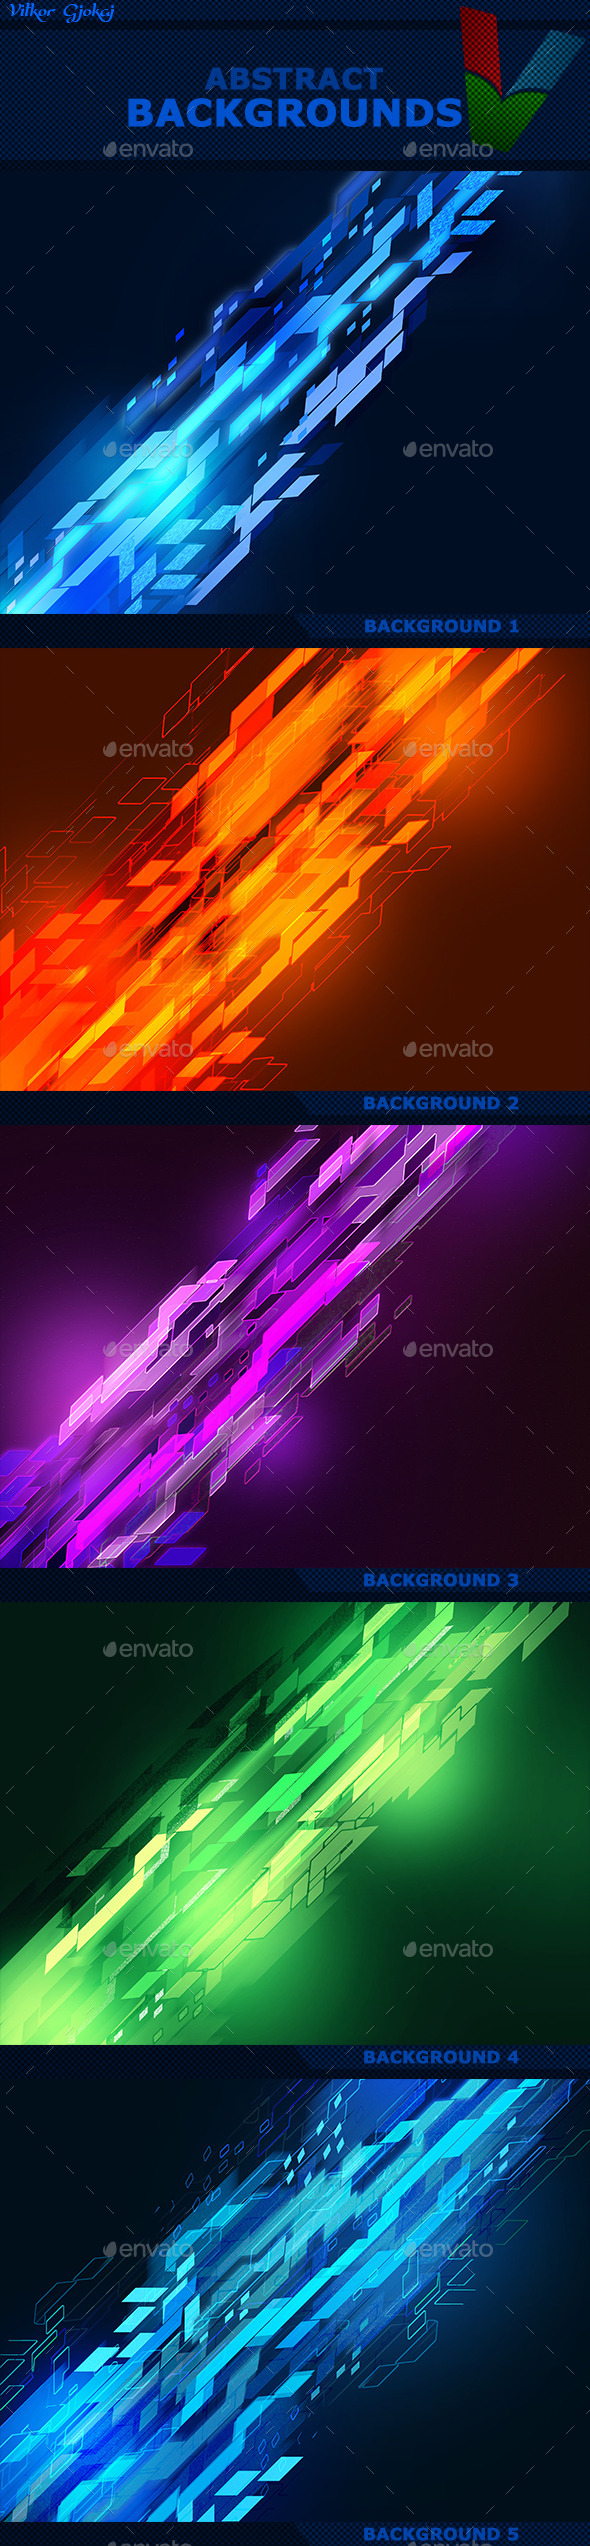 Abstract Backgrounds - Abstract Backgrounds